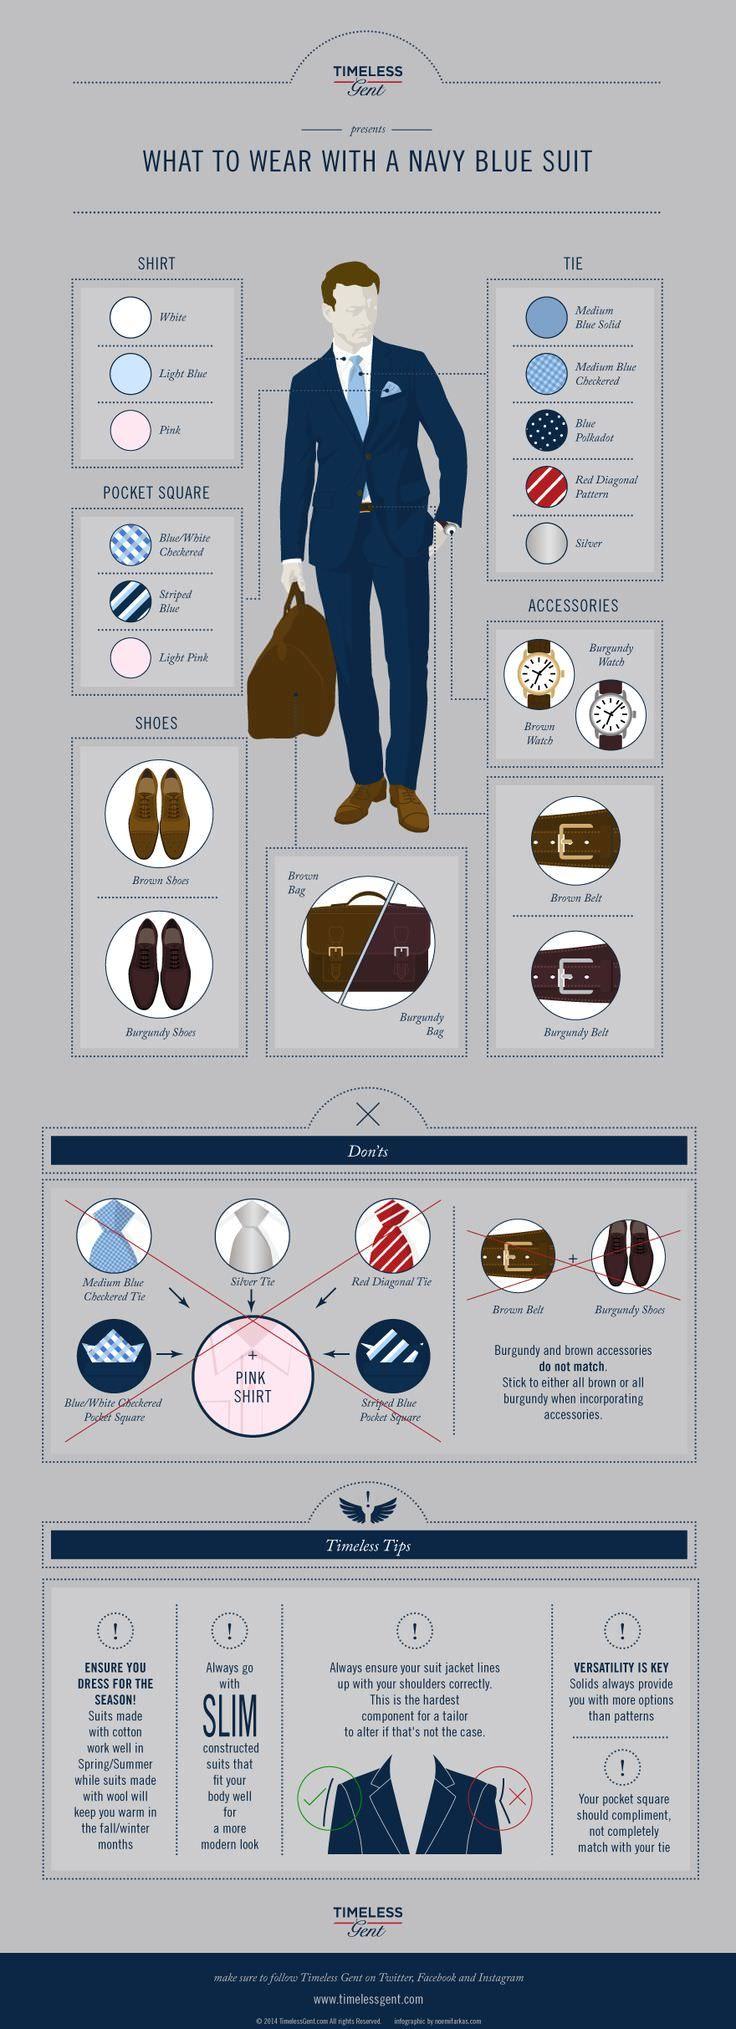 how to wear a navy blue suit perfectly